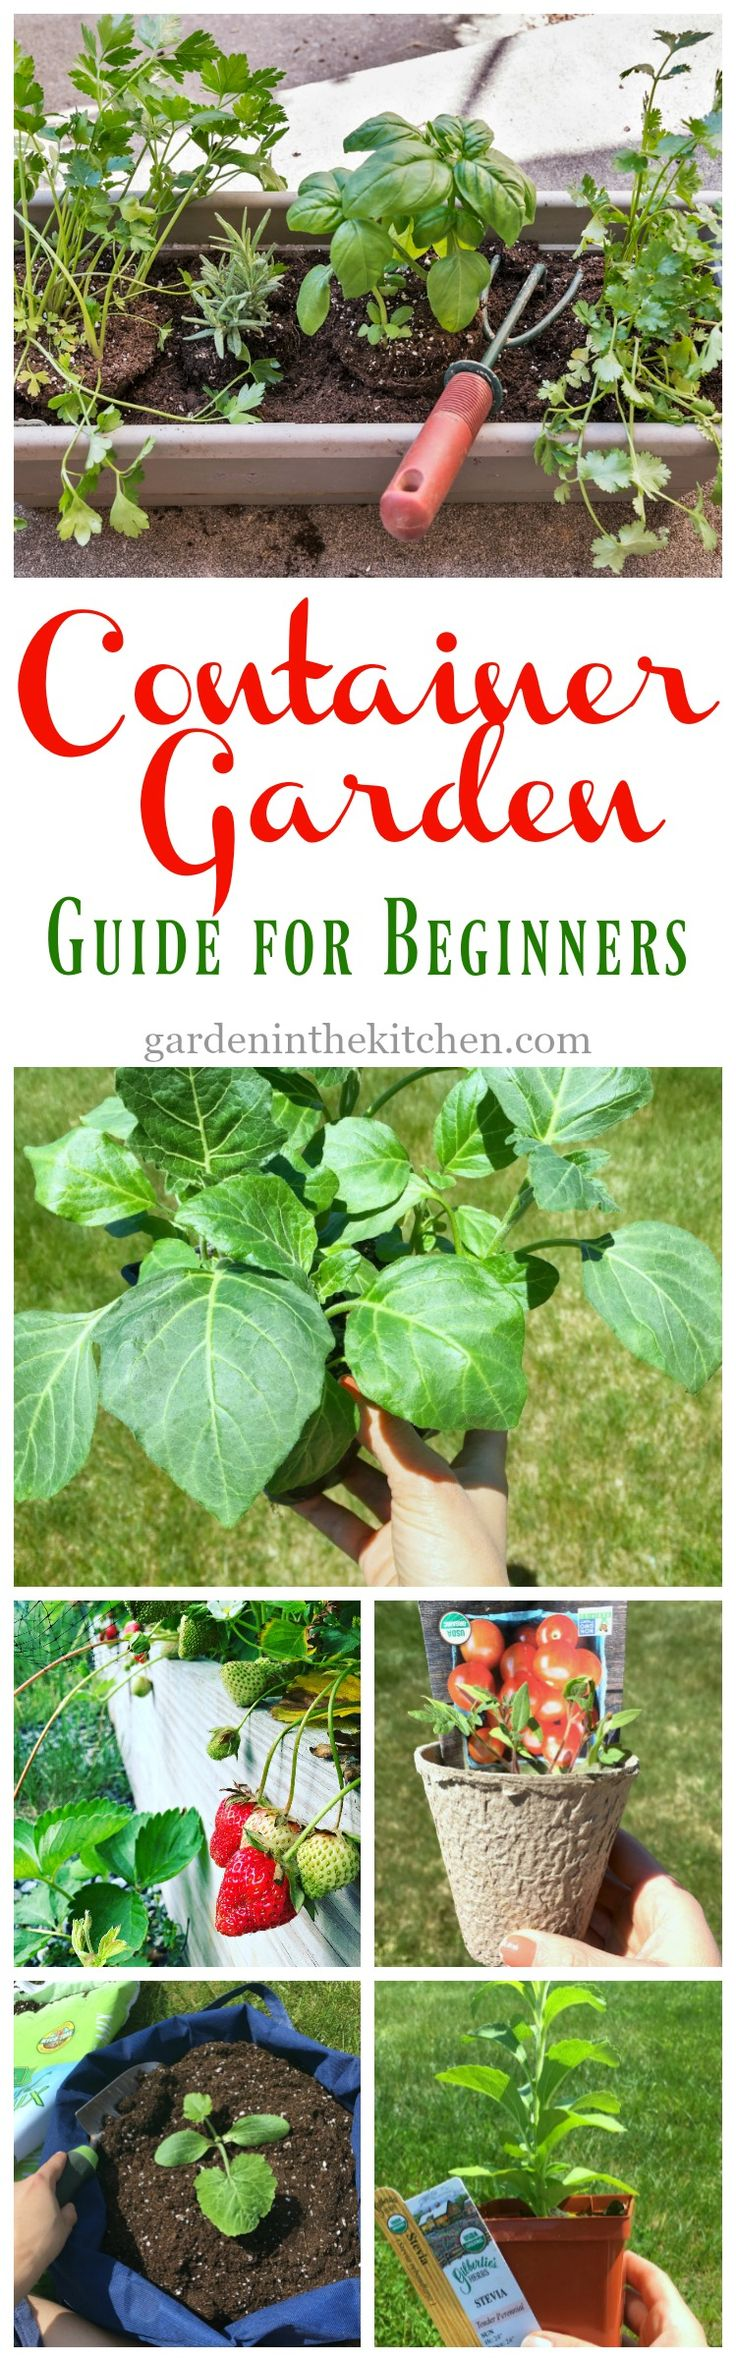 25 best ideas about garden guide on pinterest vegetable gardening date plant and greenhouse - Container gardening for beginners practical tips ...